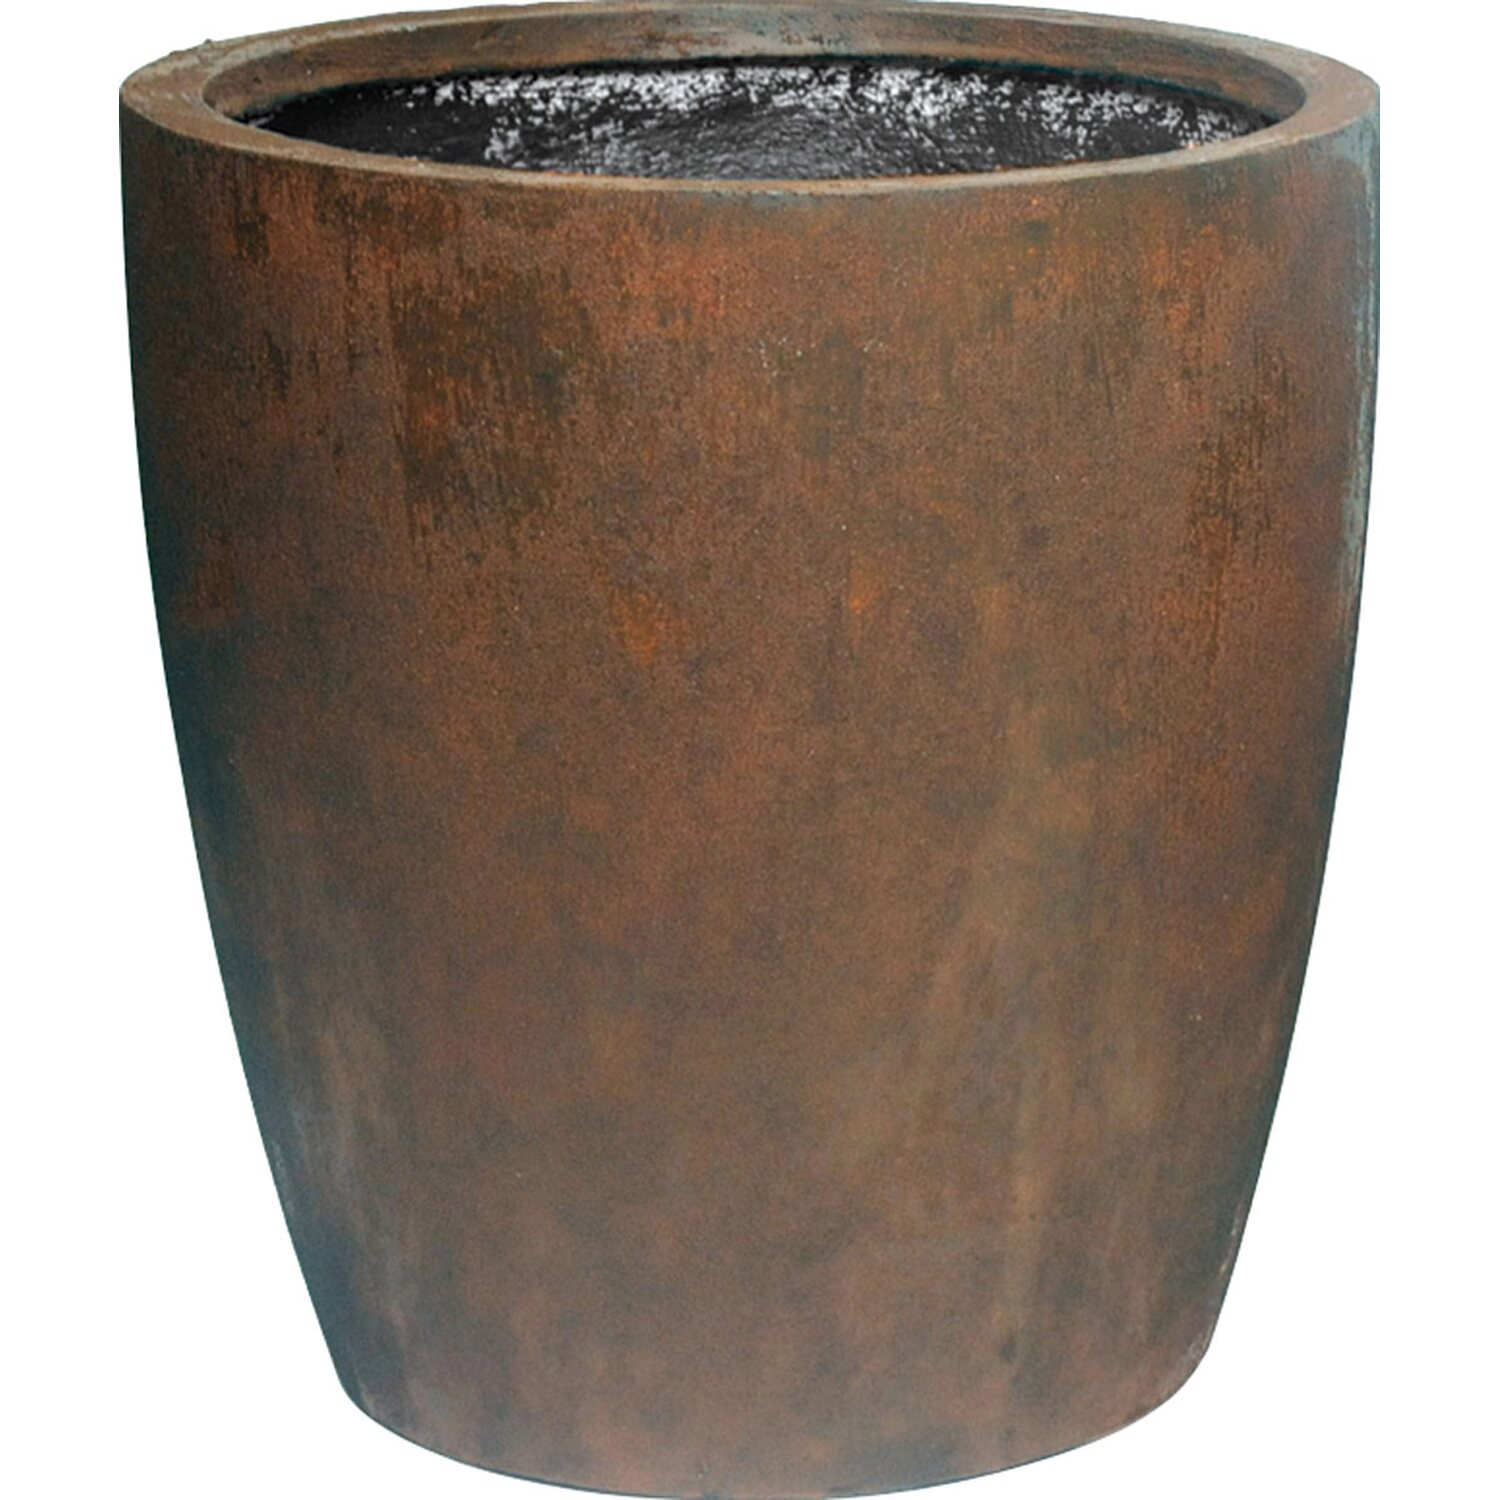 M Collections Pflanztopf Egg Pot Hoch O 50 Cm Rost Kaufen Bei Obi